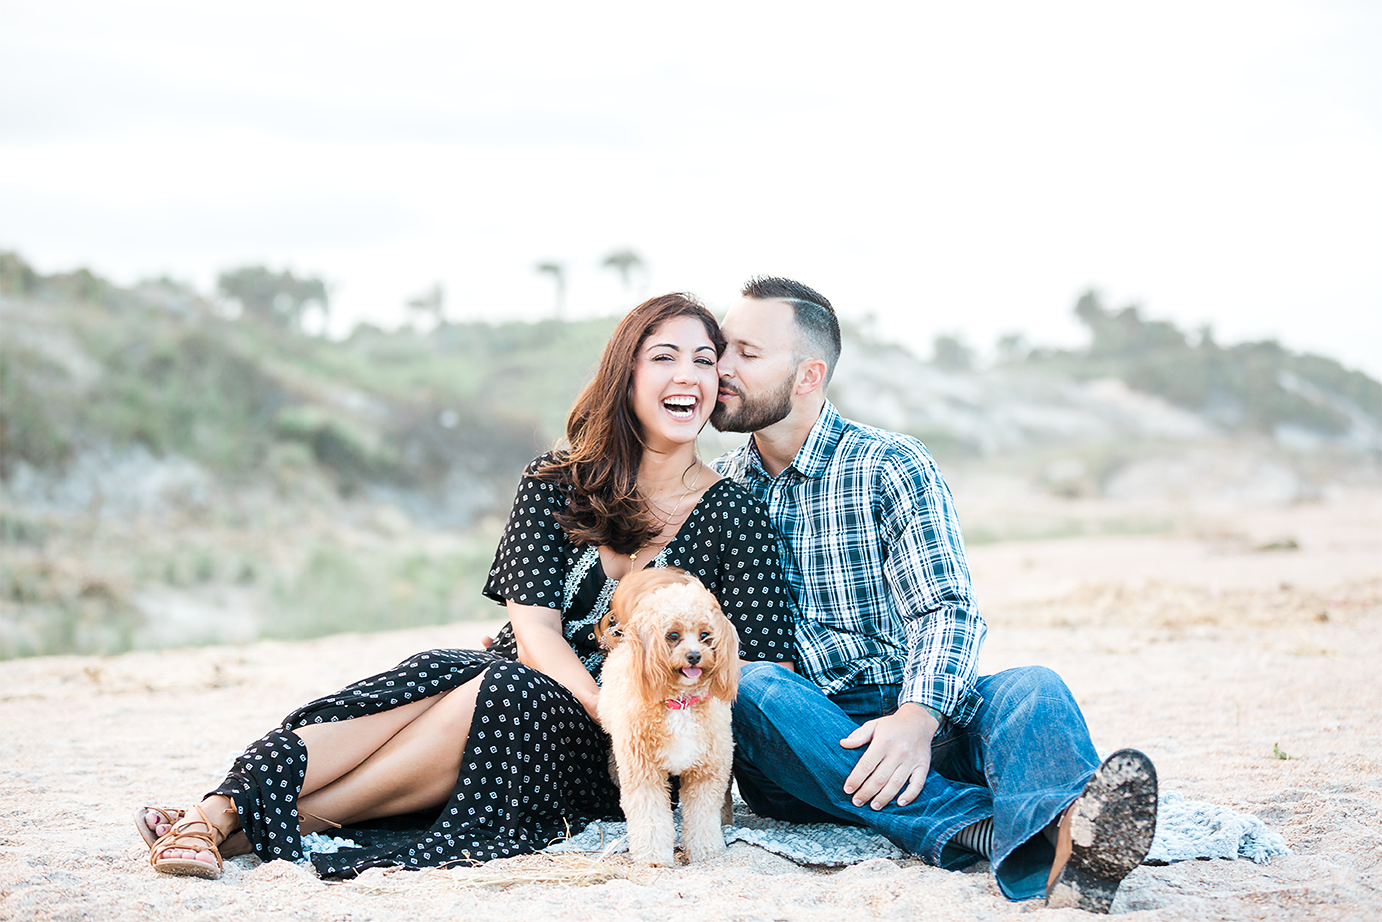 Engagement photography in Ponte Vedra beach